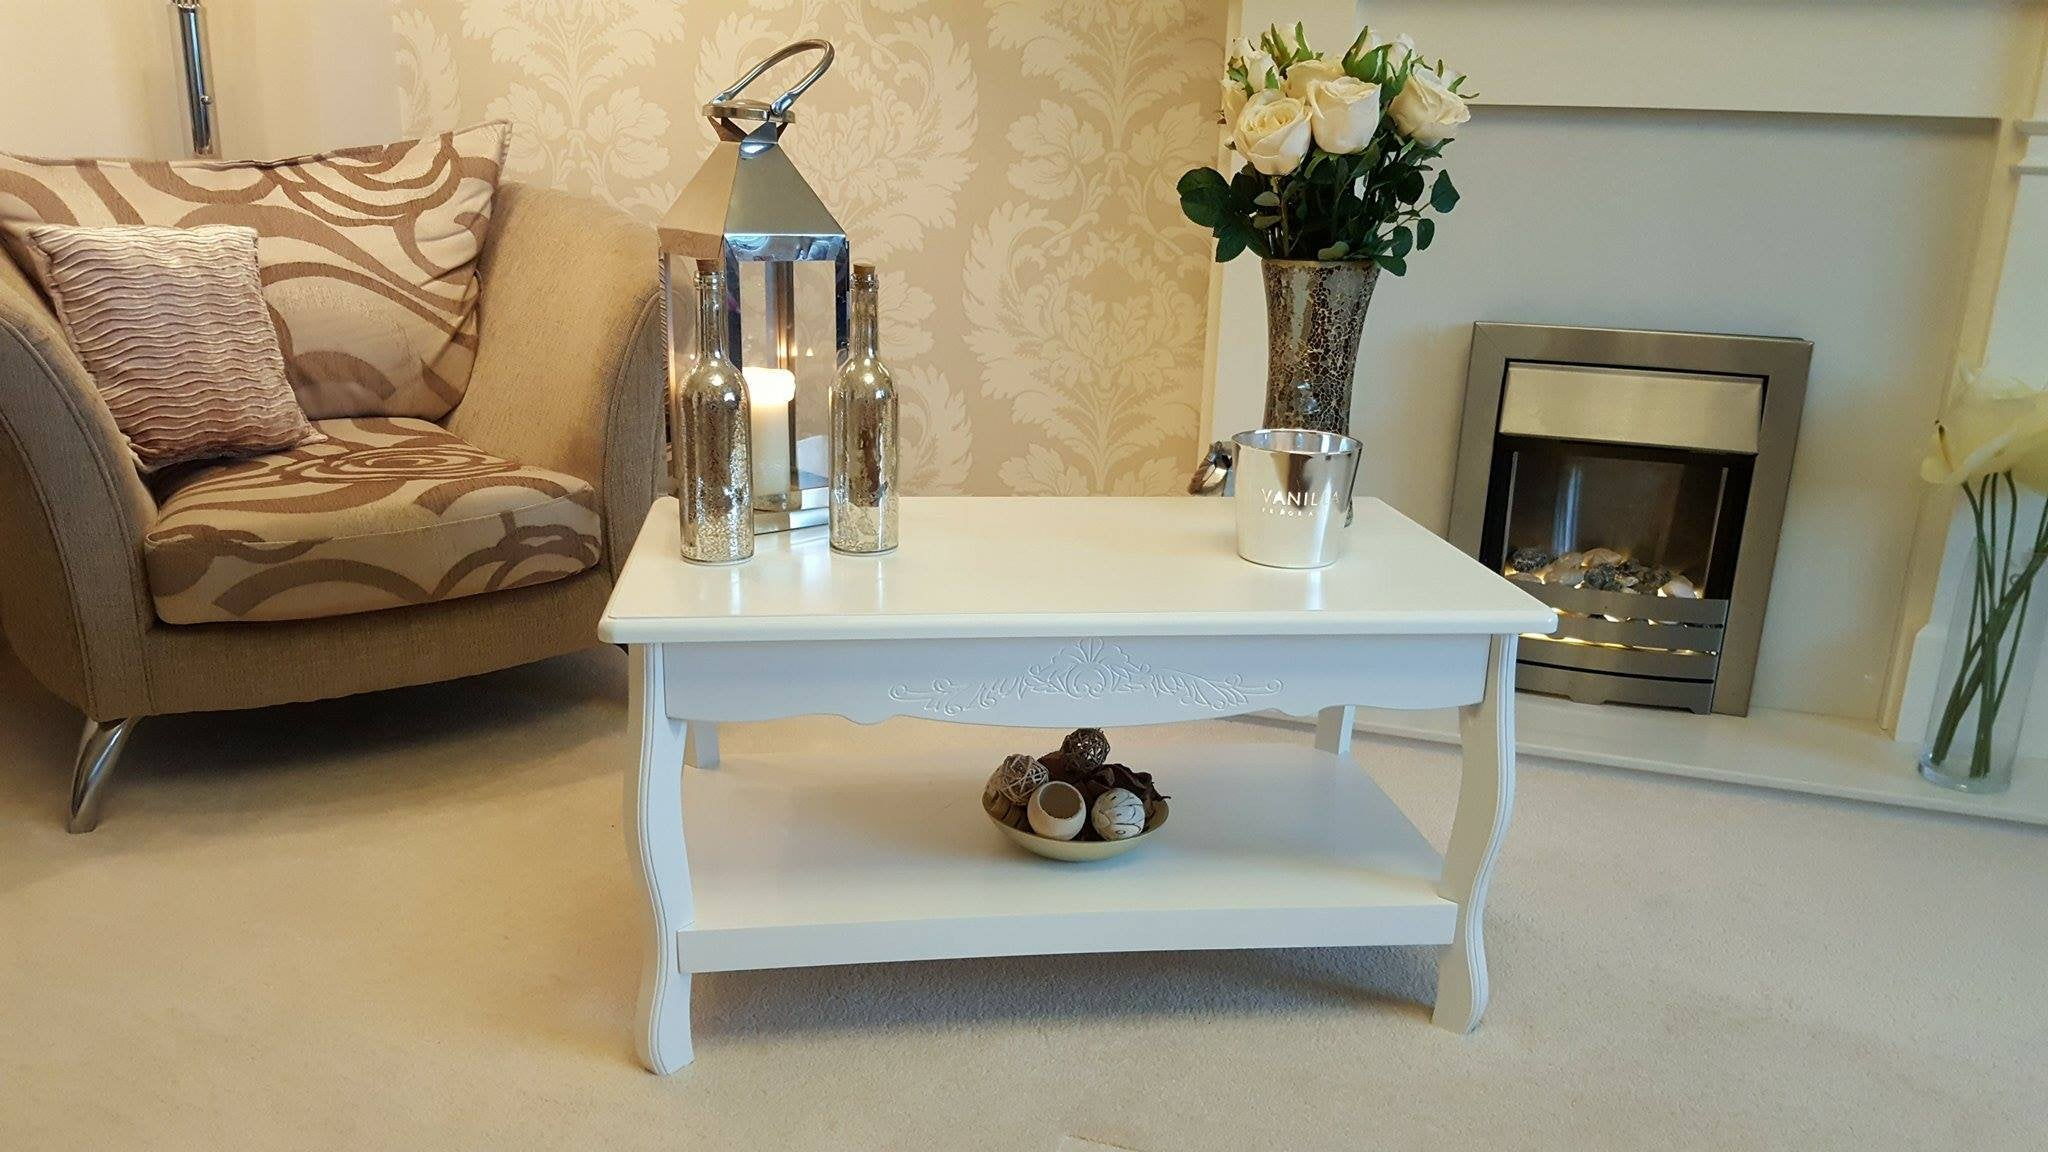 Vintage White French Style Coffee Table Side Table Living Room End